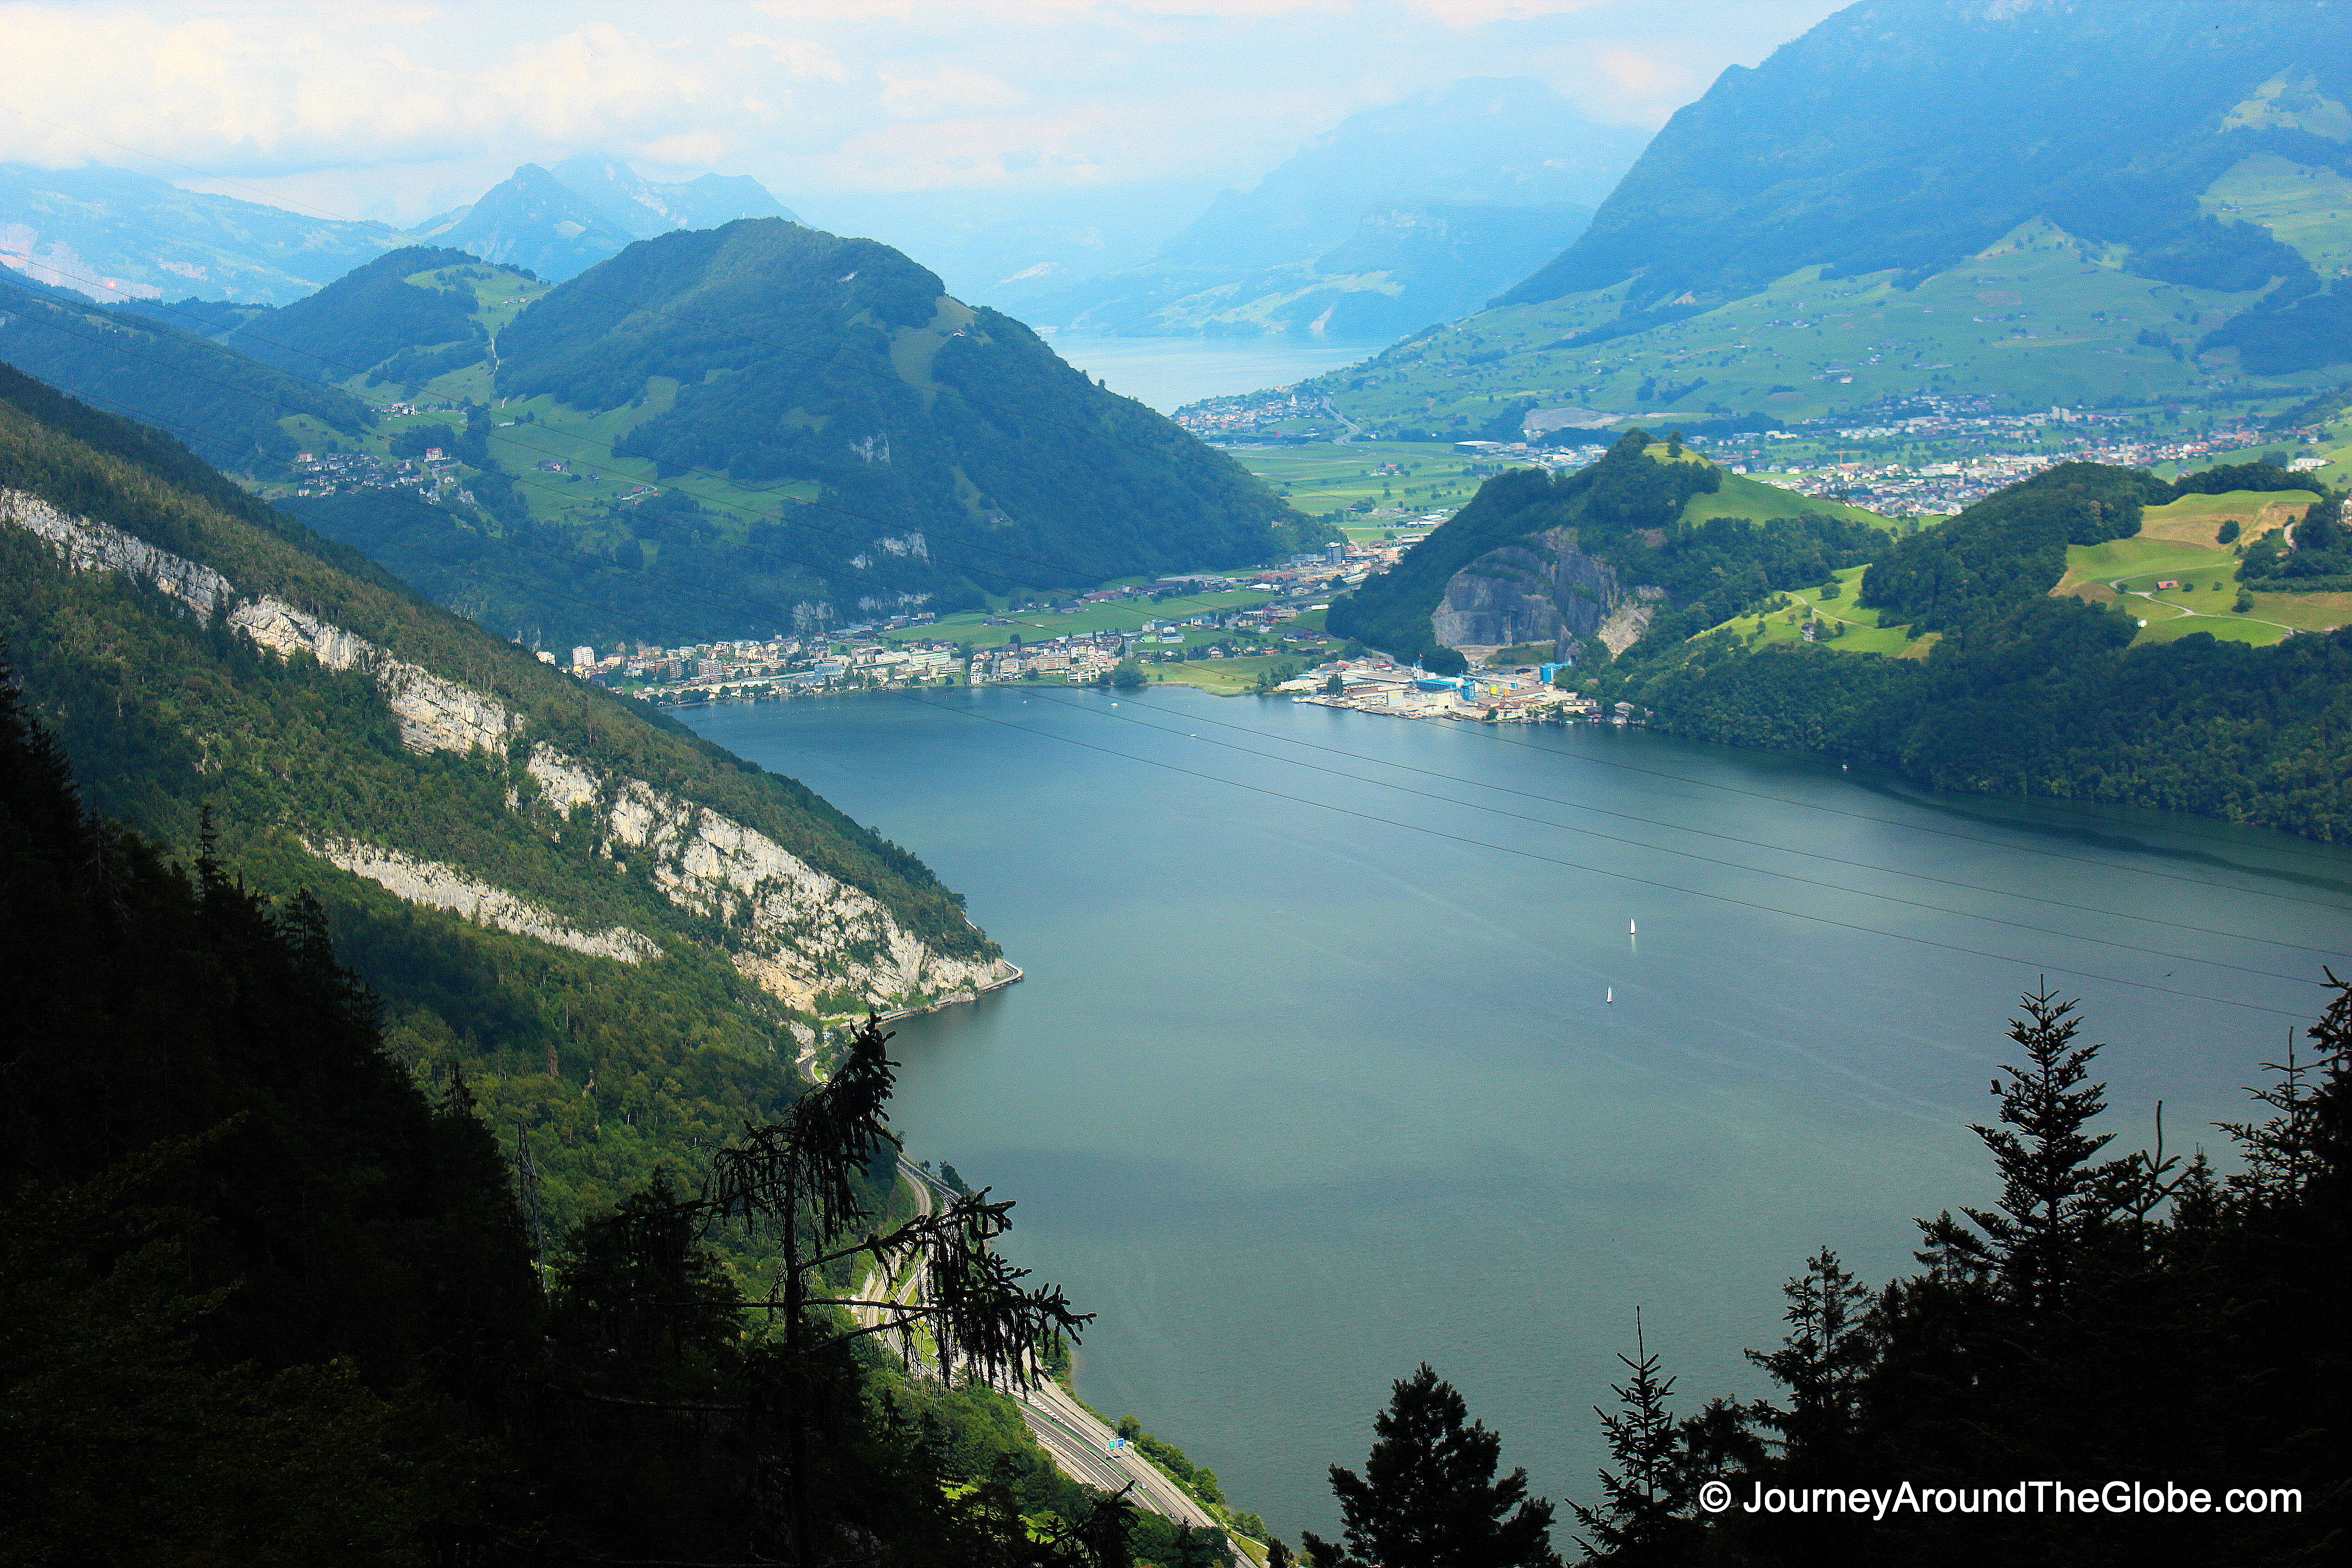 View Of Lucerne Bay As We Were Going Down The Mountain In Switzerland